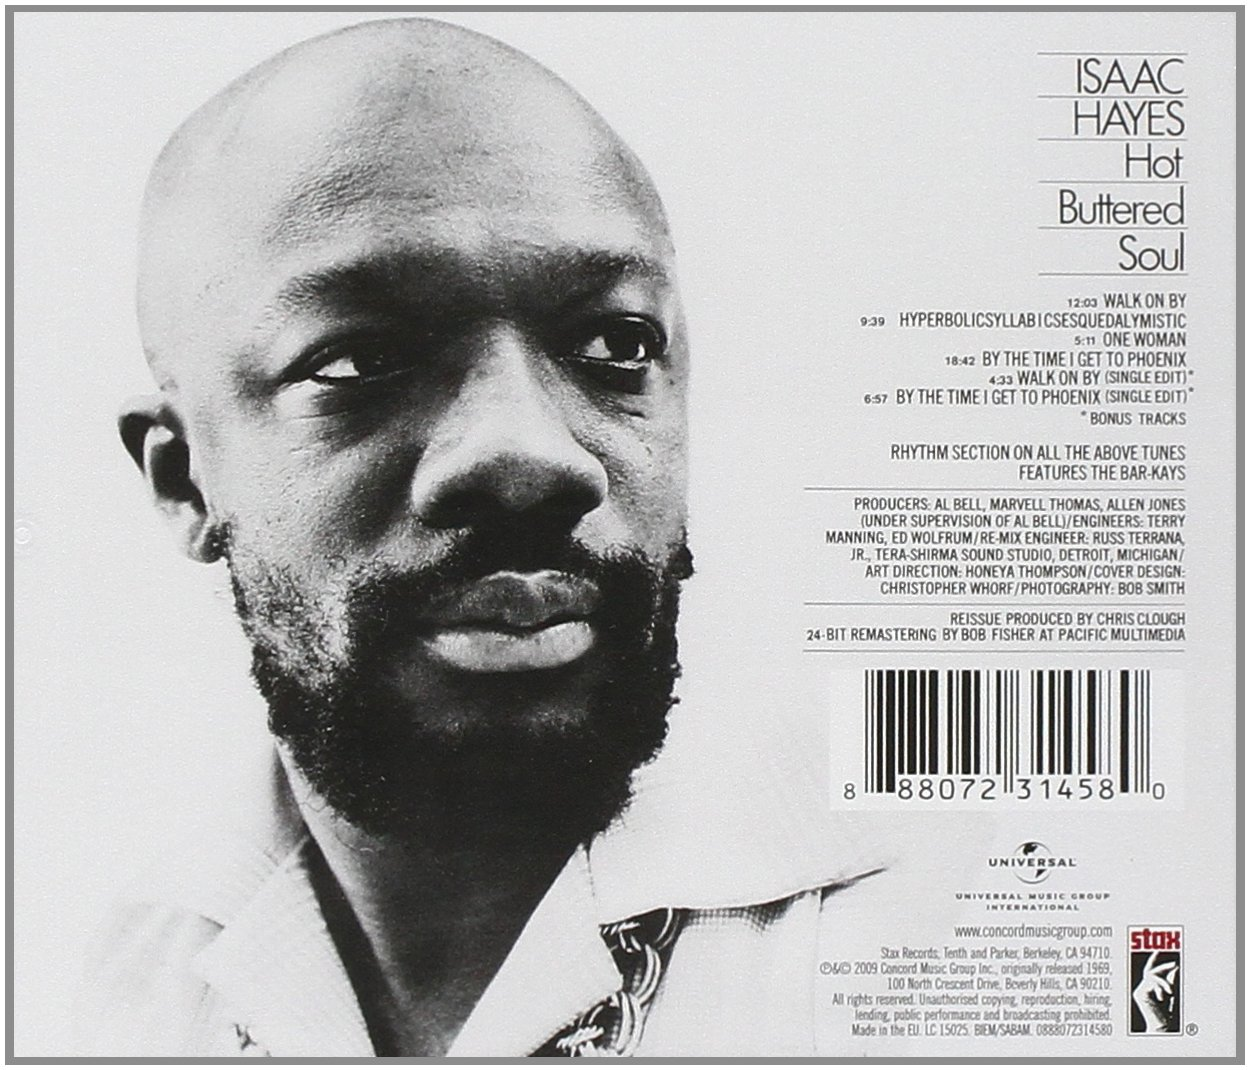 Hot Buttered Soul  Isaac Hayes  Amazon.es  Música 37ae68a52c